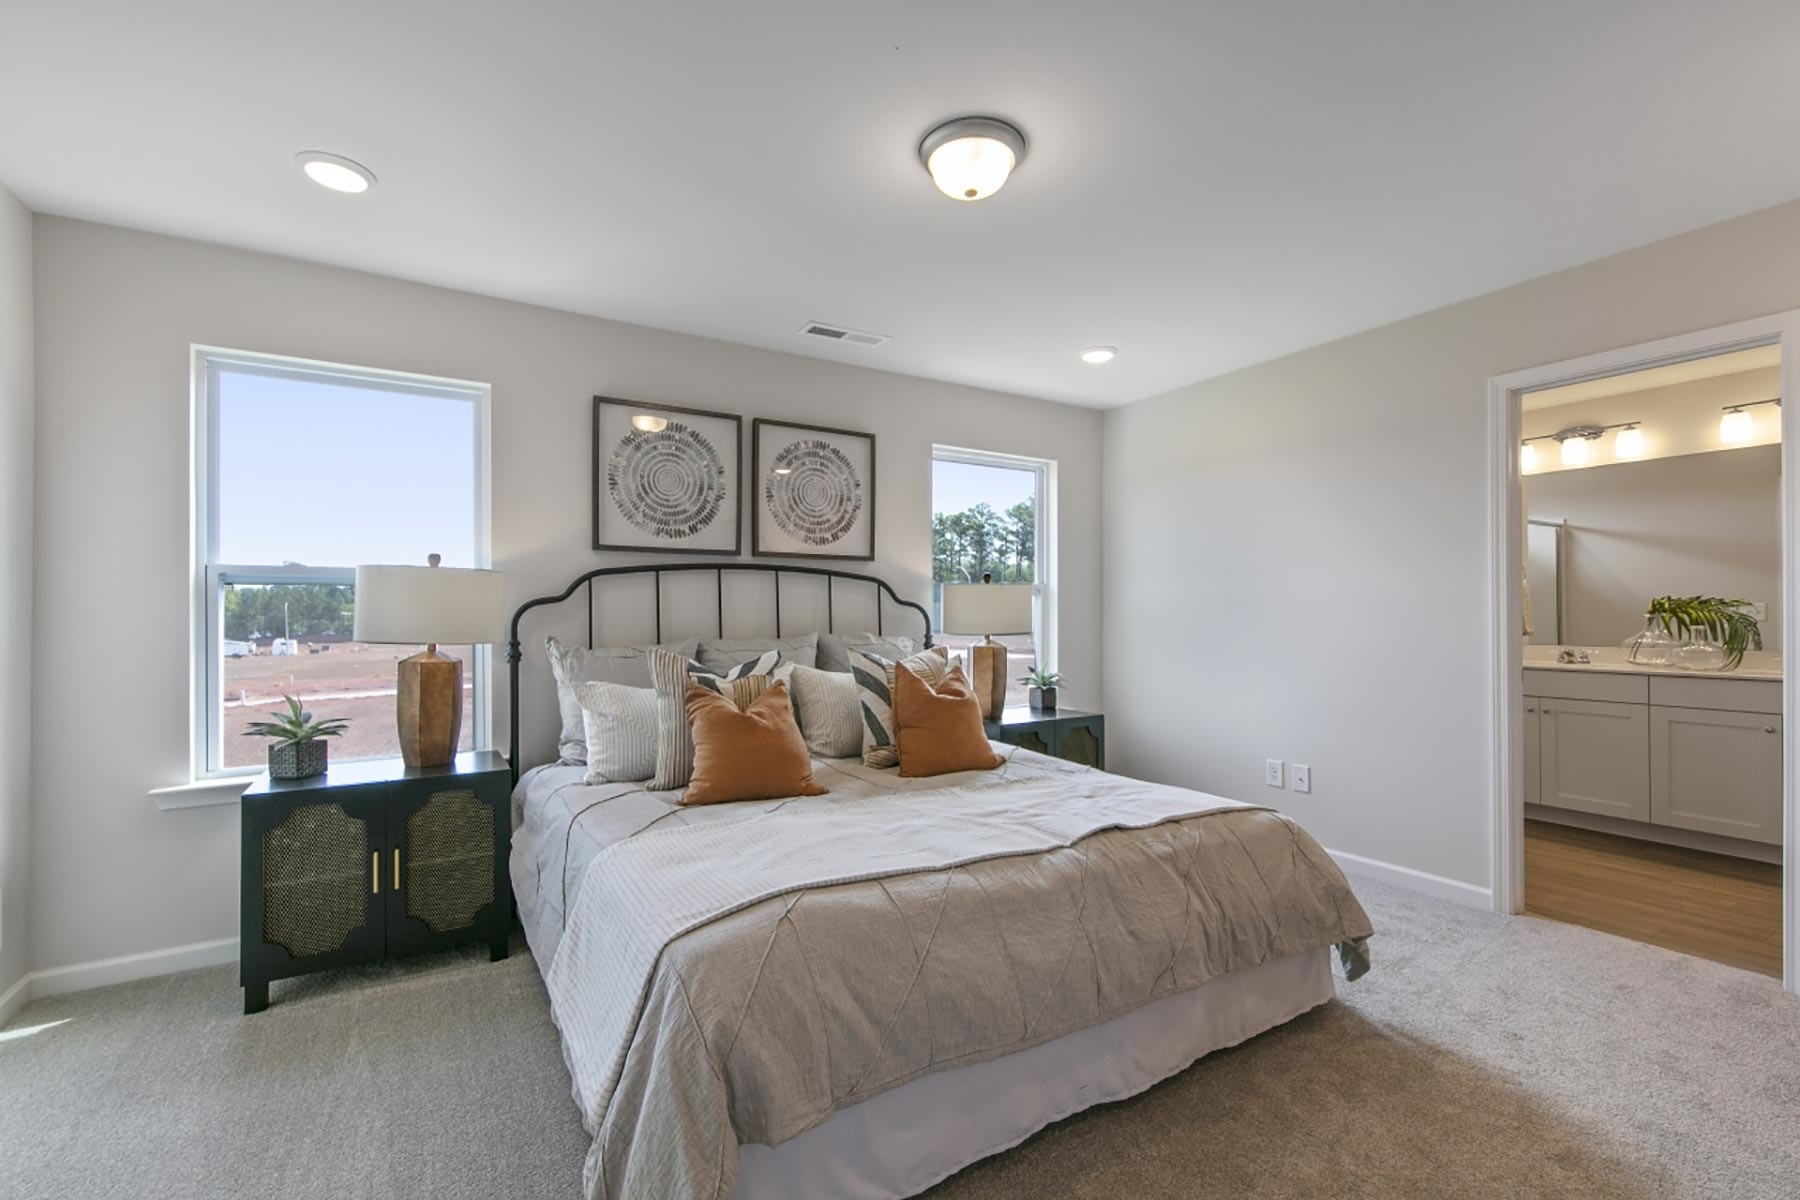 Claymore Plan Bedroom at Minglewood Townhomes in Garner North Carolina by Mattamy Homes